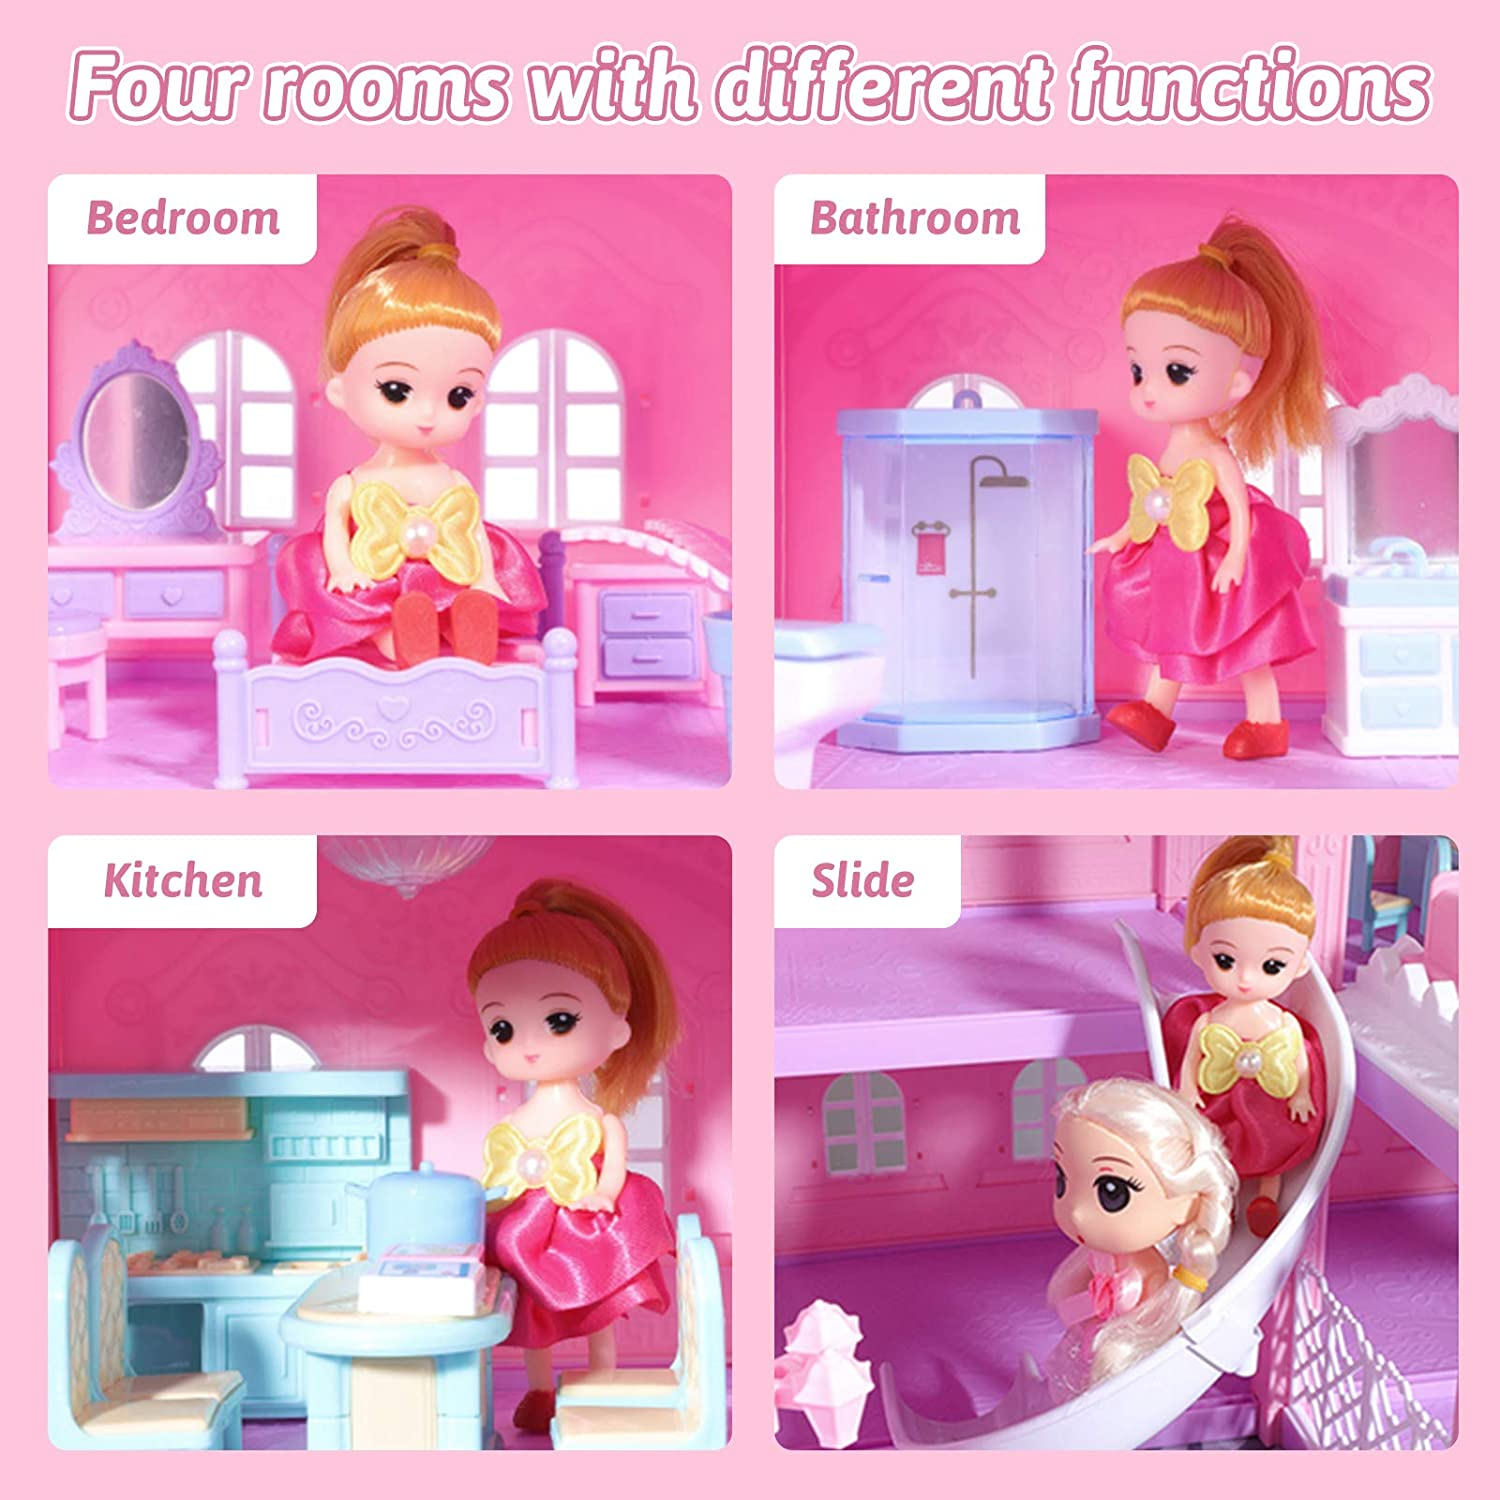 KAINSY Dollhouse Pink 388-36 Dream House Kit with Led Luminous DIY Pretend Play Doll House Building Toys Playset Accessories with Furniture//Dolls//Pets//Slide for Toddlers Girls Best Gifts